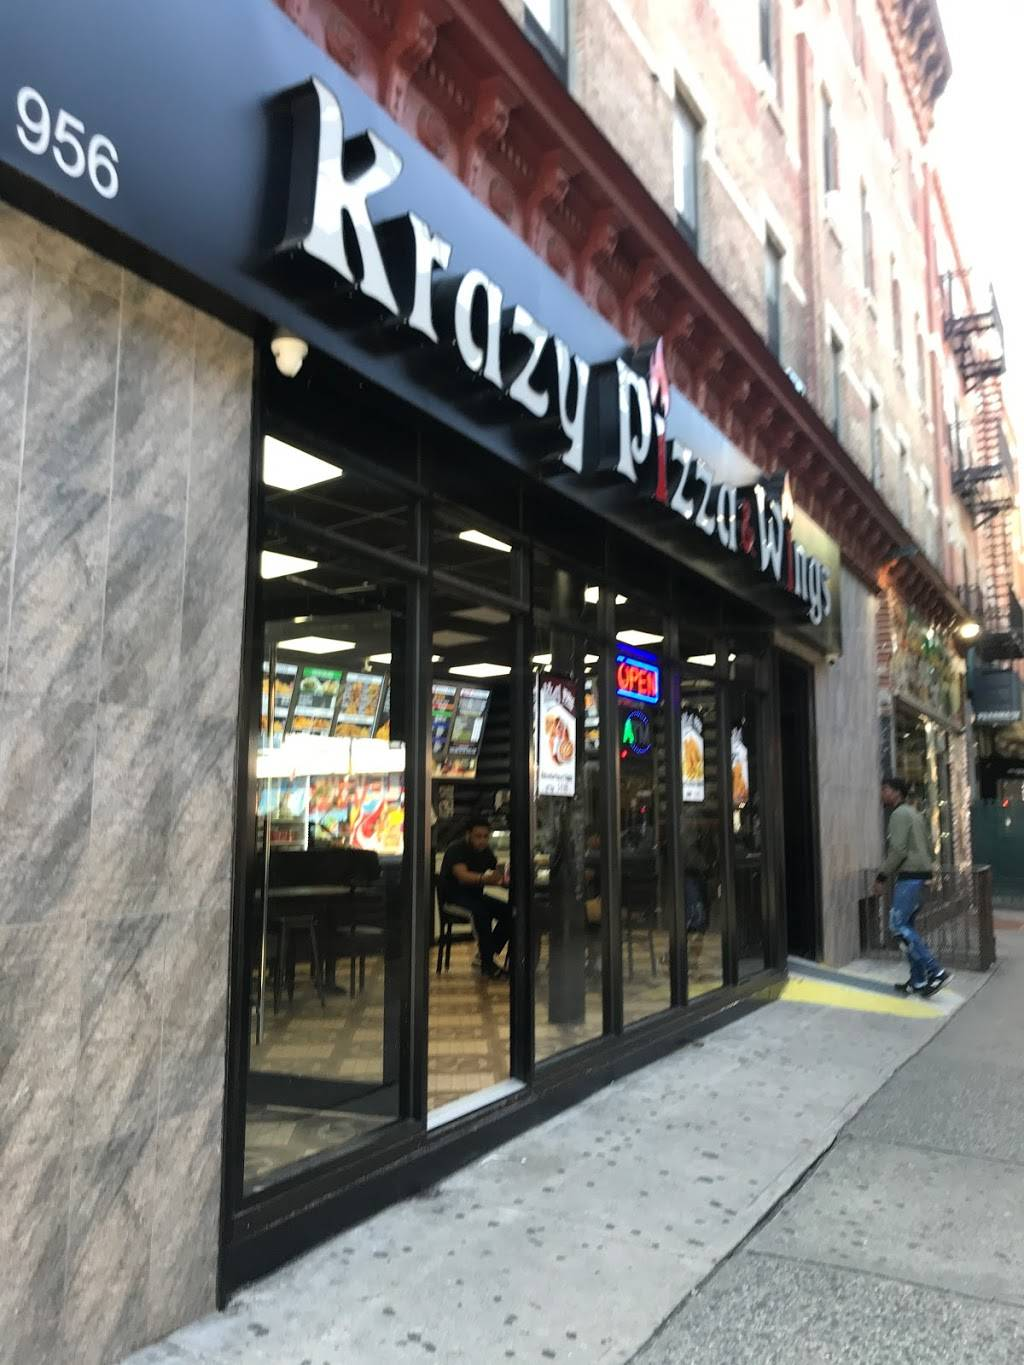 Krazy Pizza and Wings | restaurant | 1784 Broadway, Brooklyn, NY 11207, USA | 7185133085 OR +1 718-513-3085